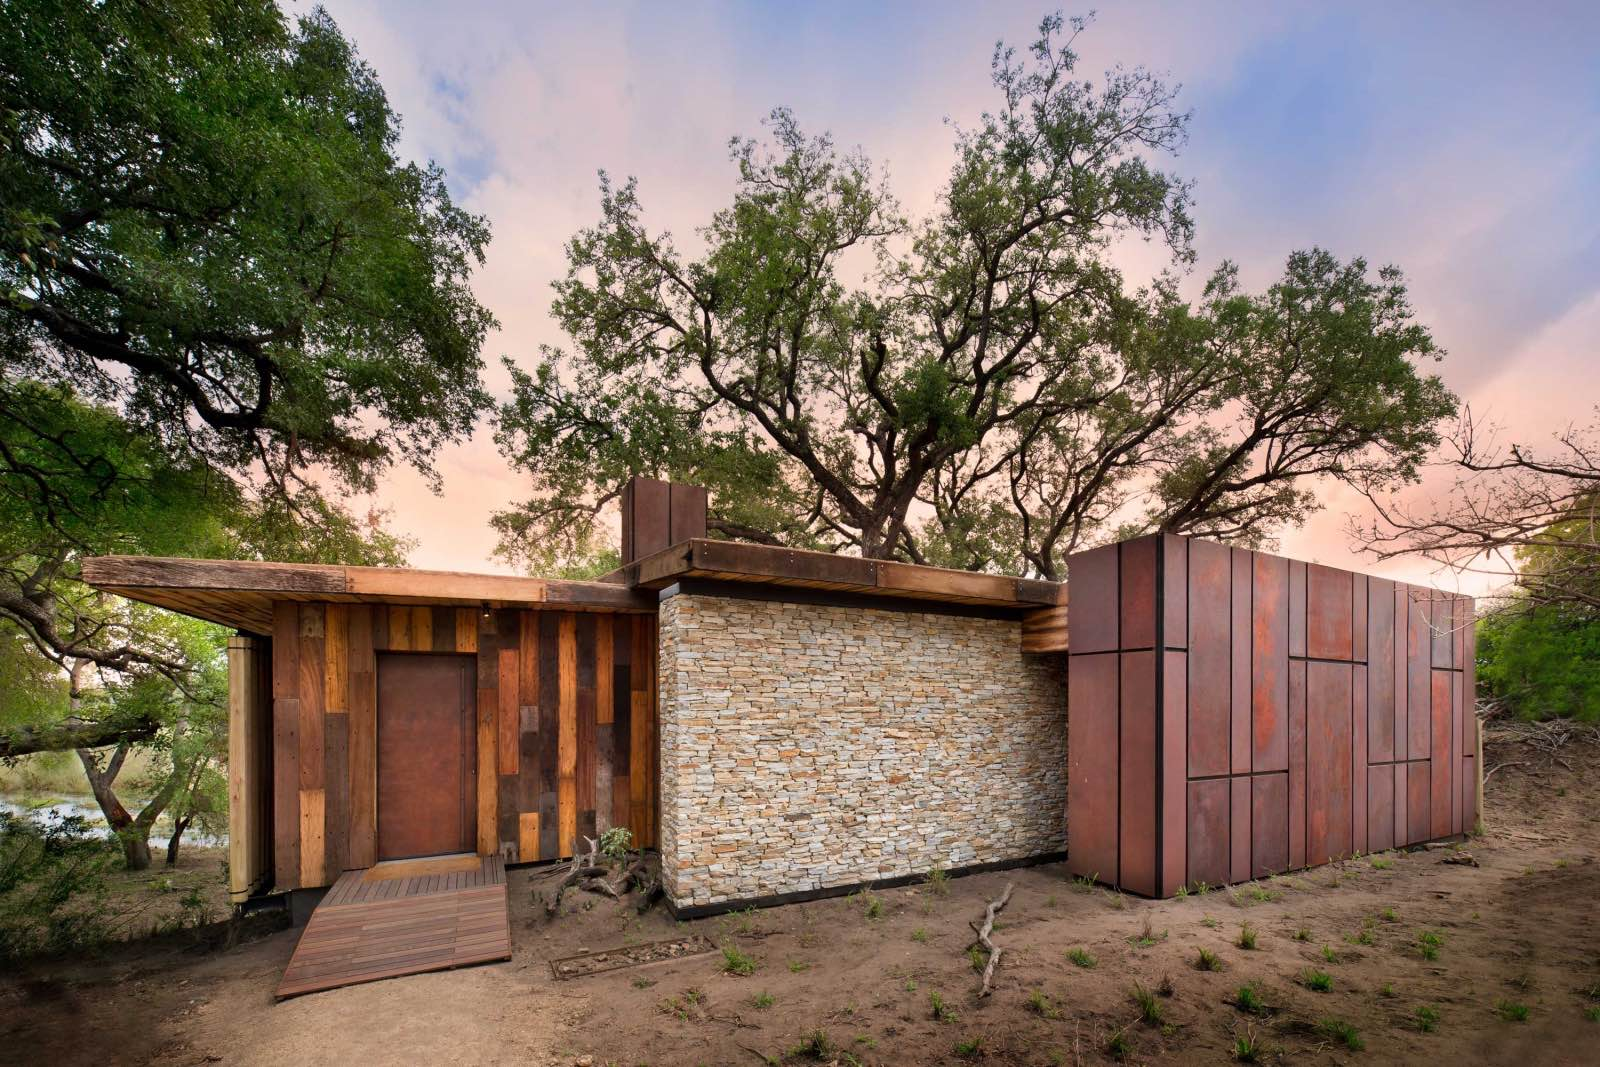 Organic and blending in with nature - suite exterior